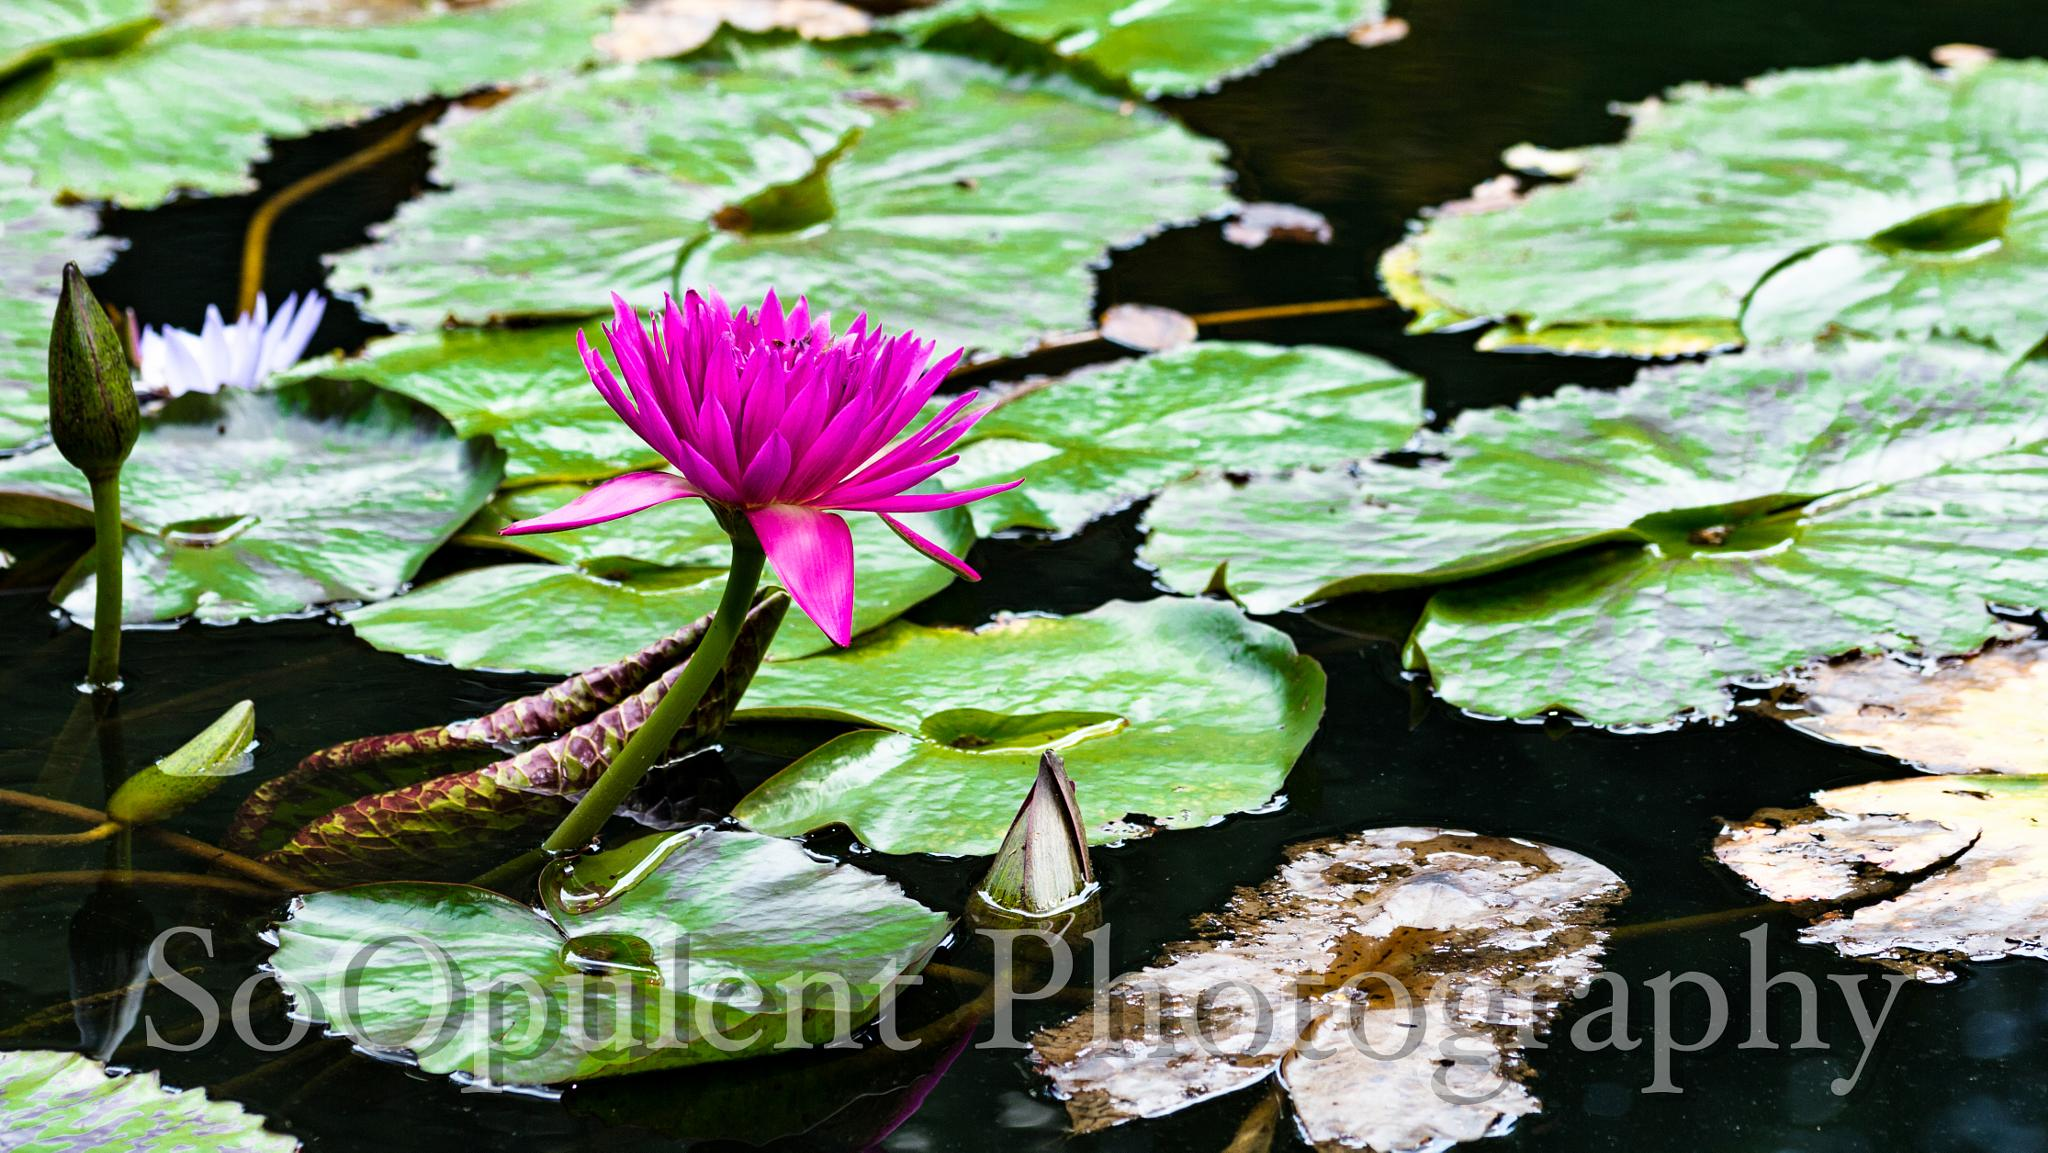 Water Lilly by SoOpulent Photography